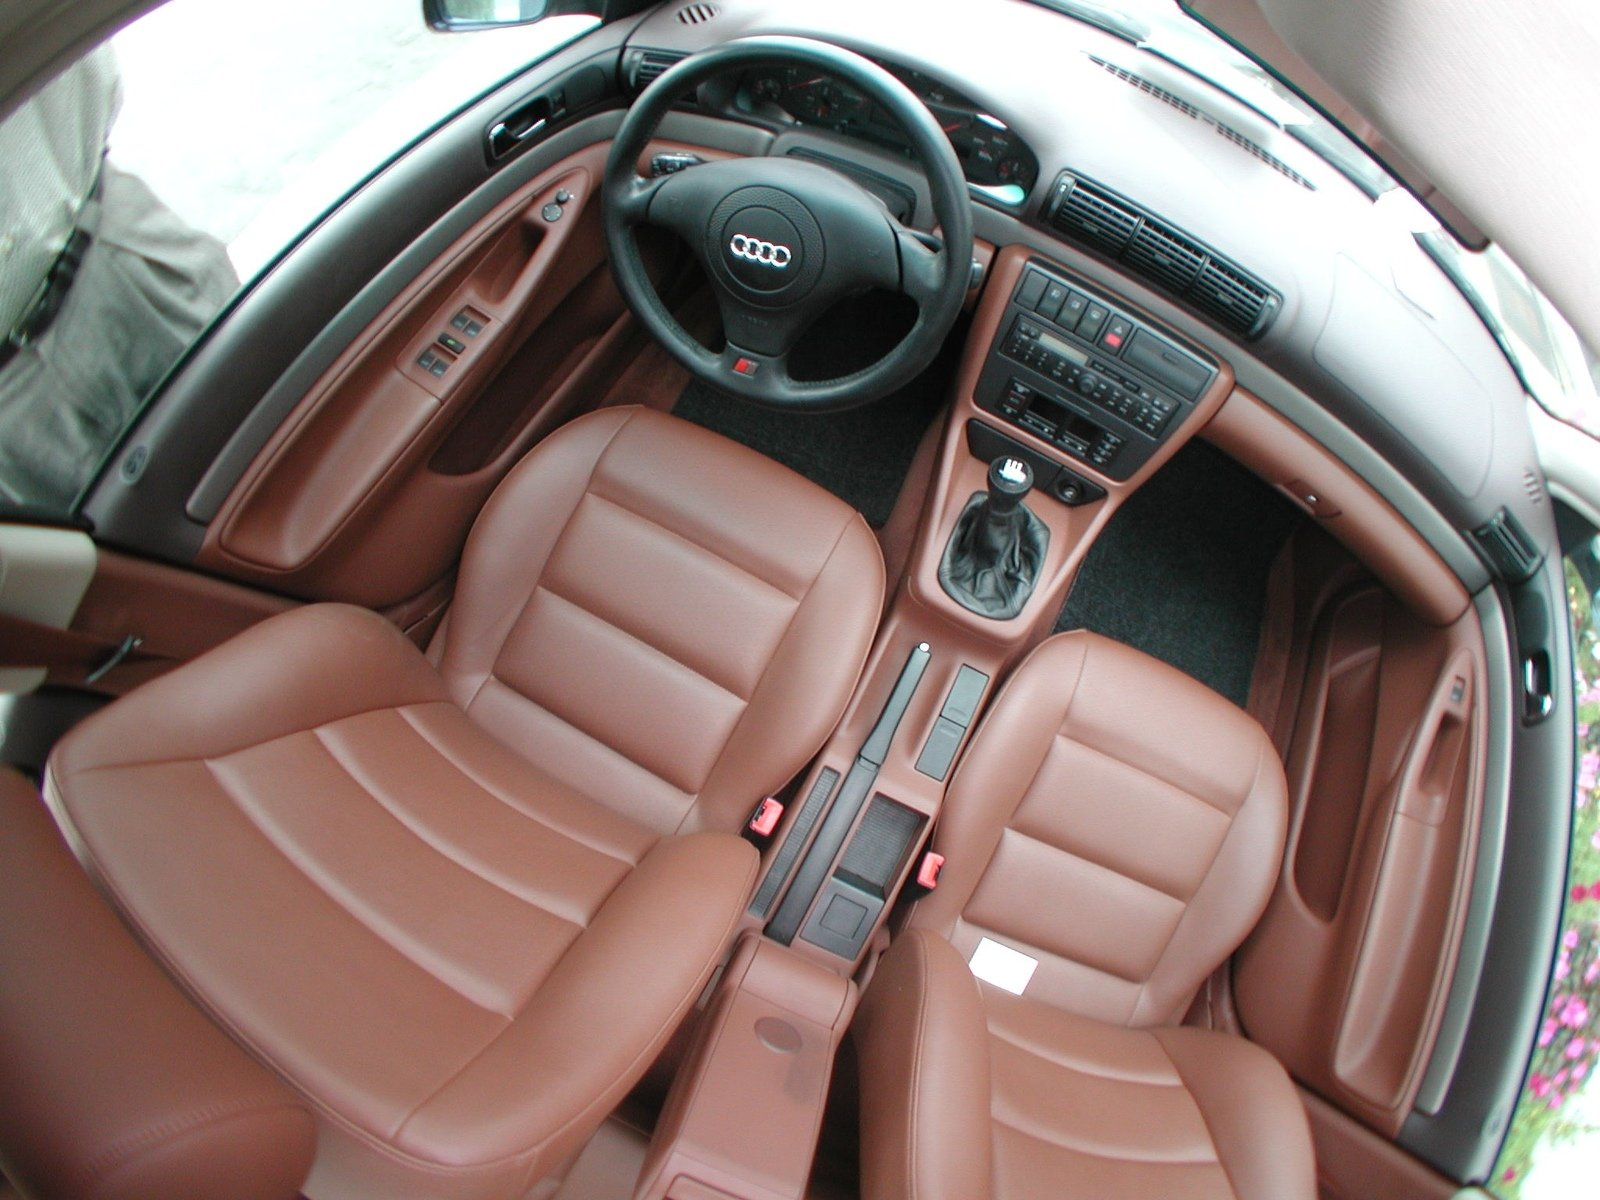 https://images.freeimages.com/images/large-previews/46a/audi-a4-interior-wide-angle-1505715.jpg